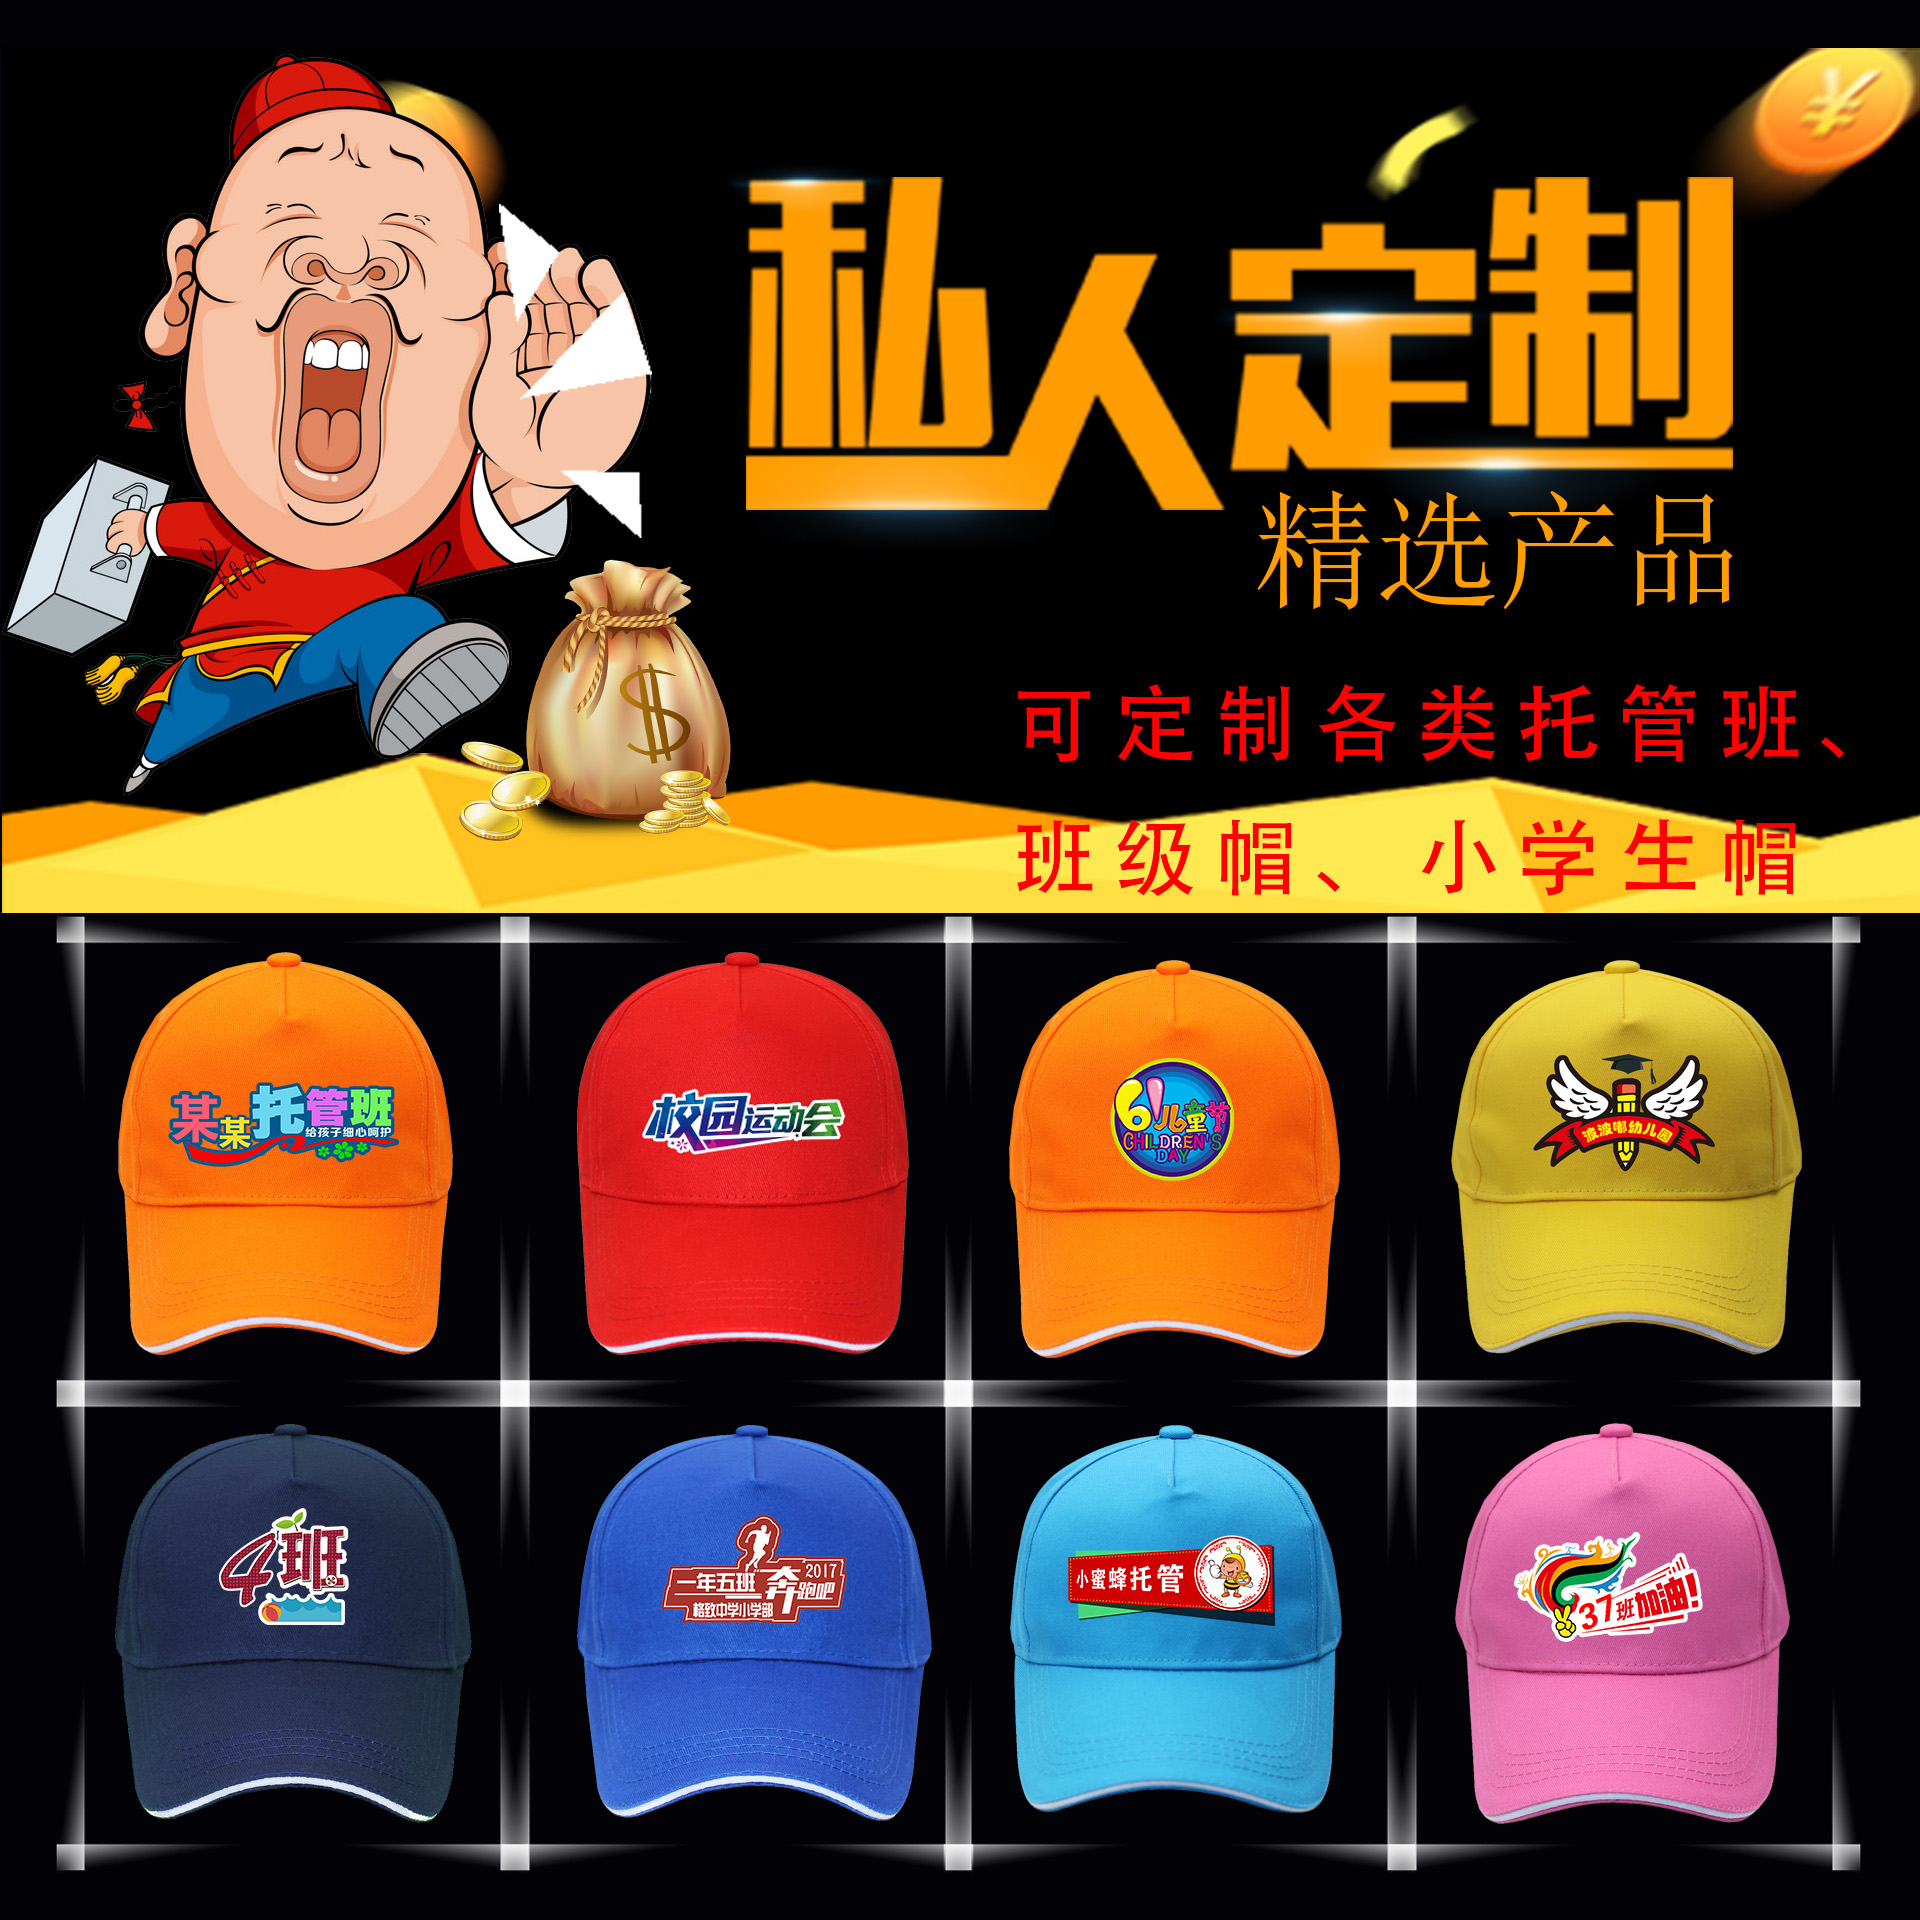 Custom hat student hat logo childrens hat kindergarten activity hat trusteeship coaching hat baseball hat picture printing